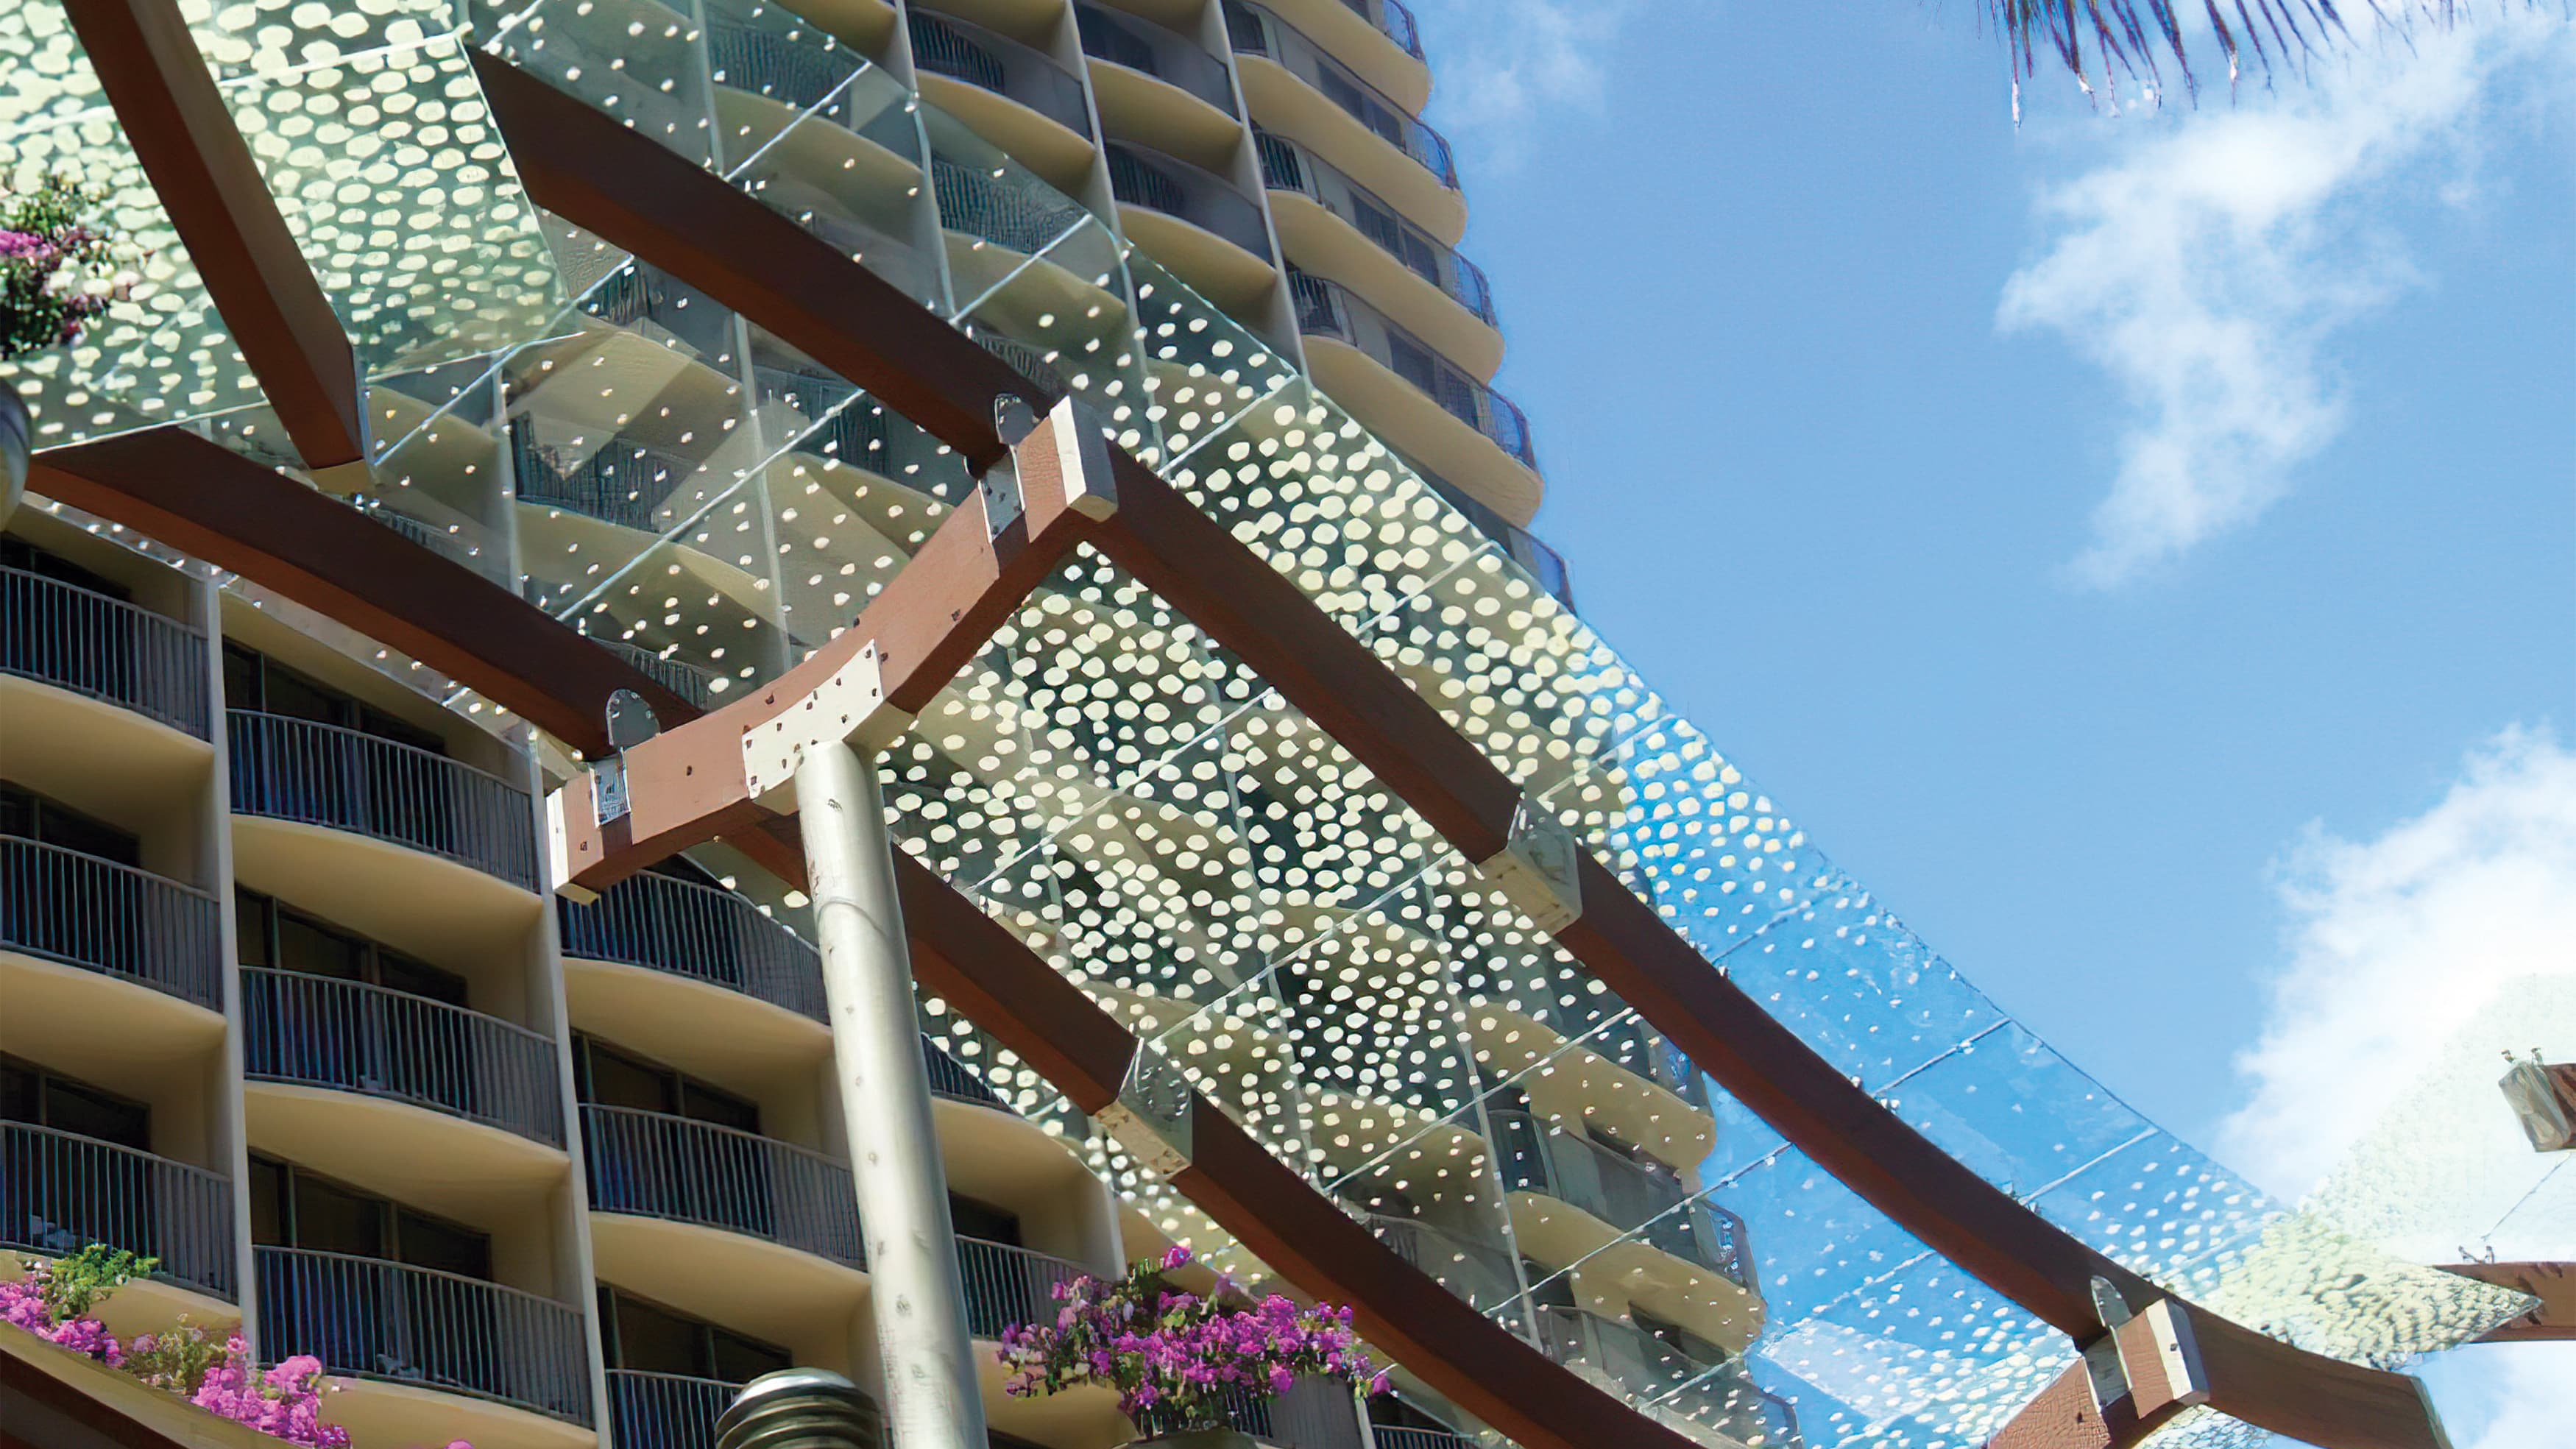 A photograph of a pattern applied to an architectural canopy element.